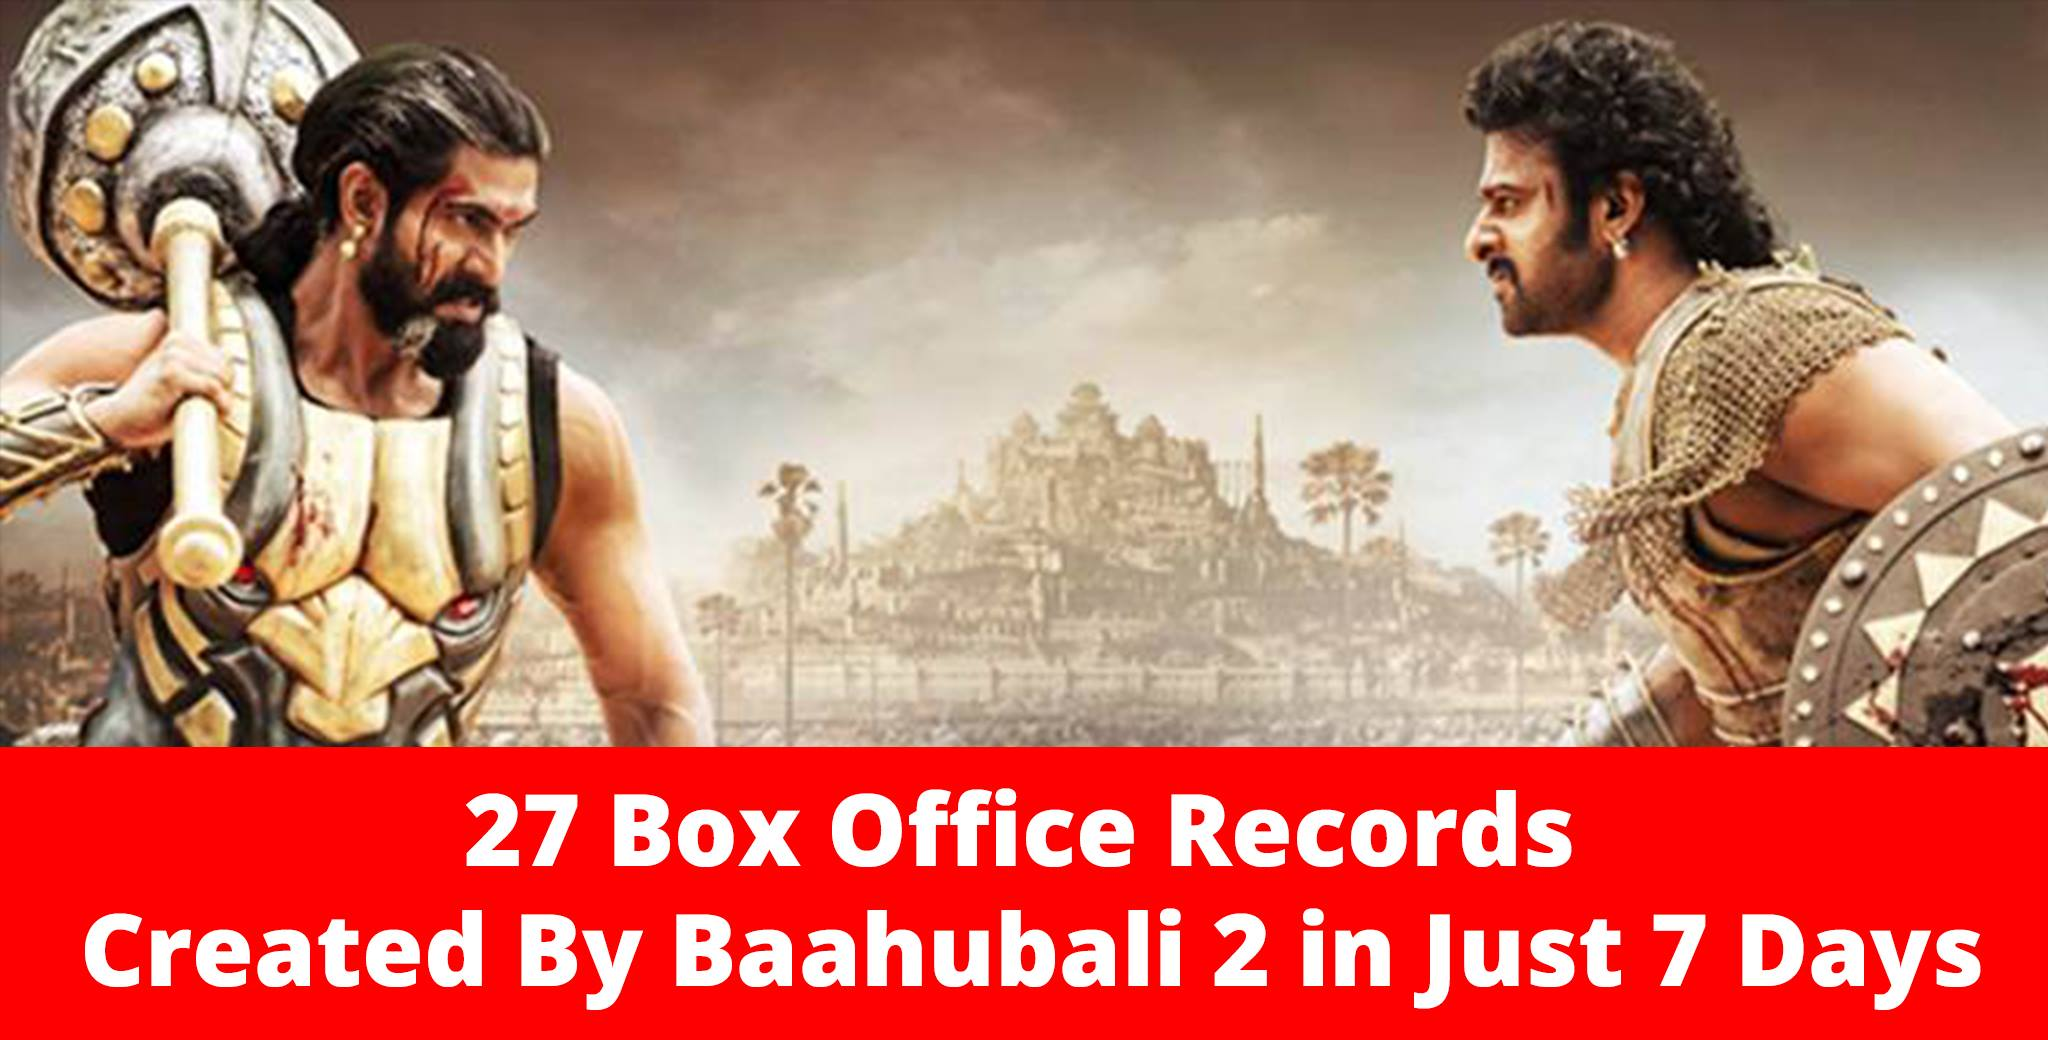 In 7 days baahubali 2 created 27 box office records bollywood news and gossip - Box office bollywood records ...